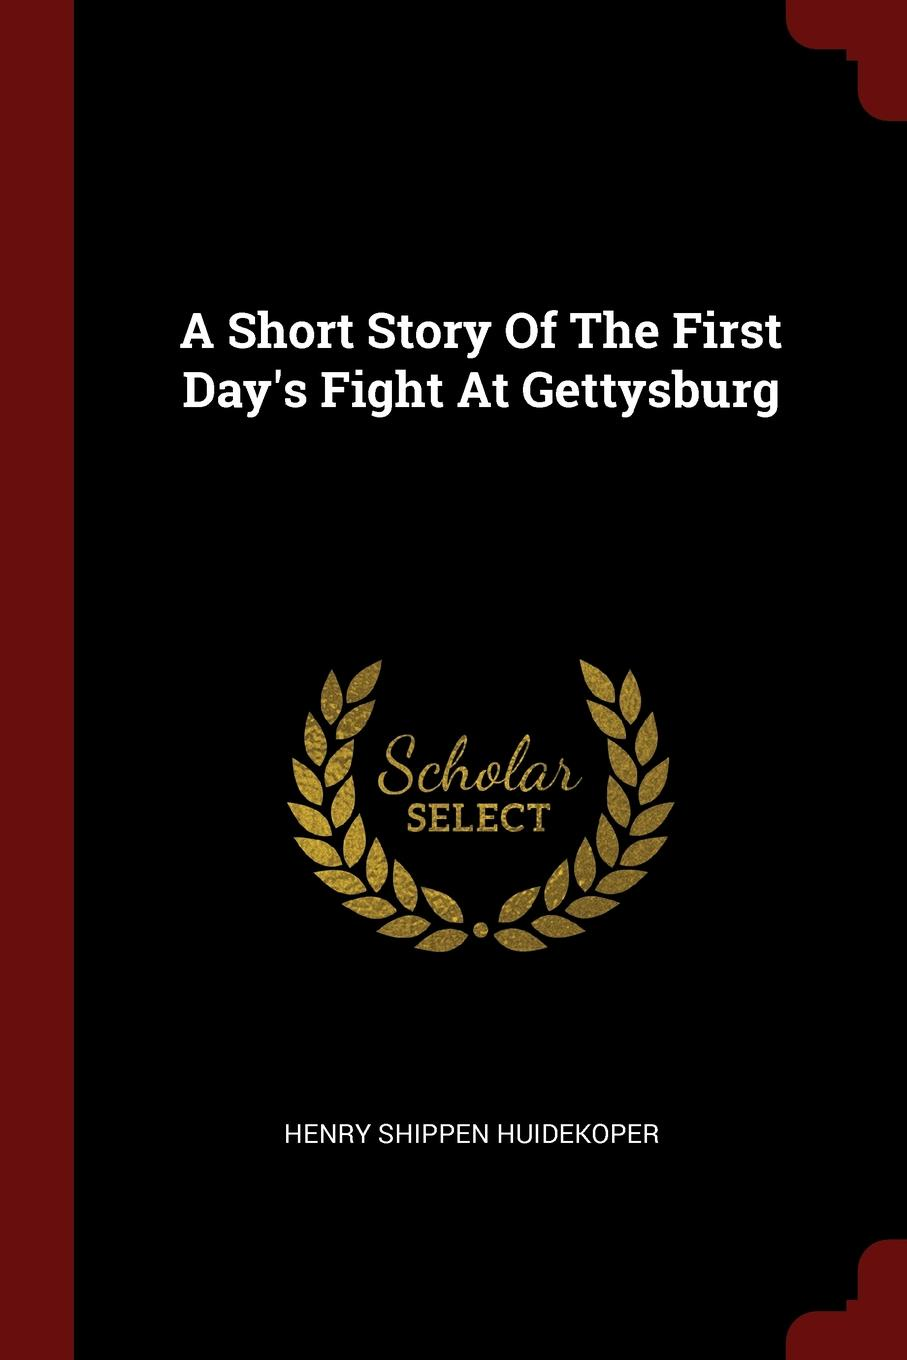 A Short Story Of The First Day.s Fight At Gettysburg